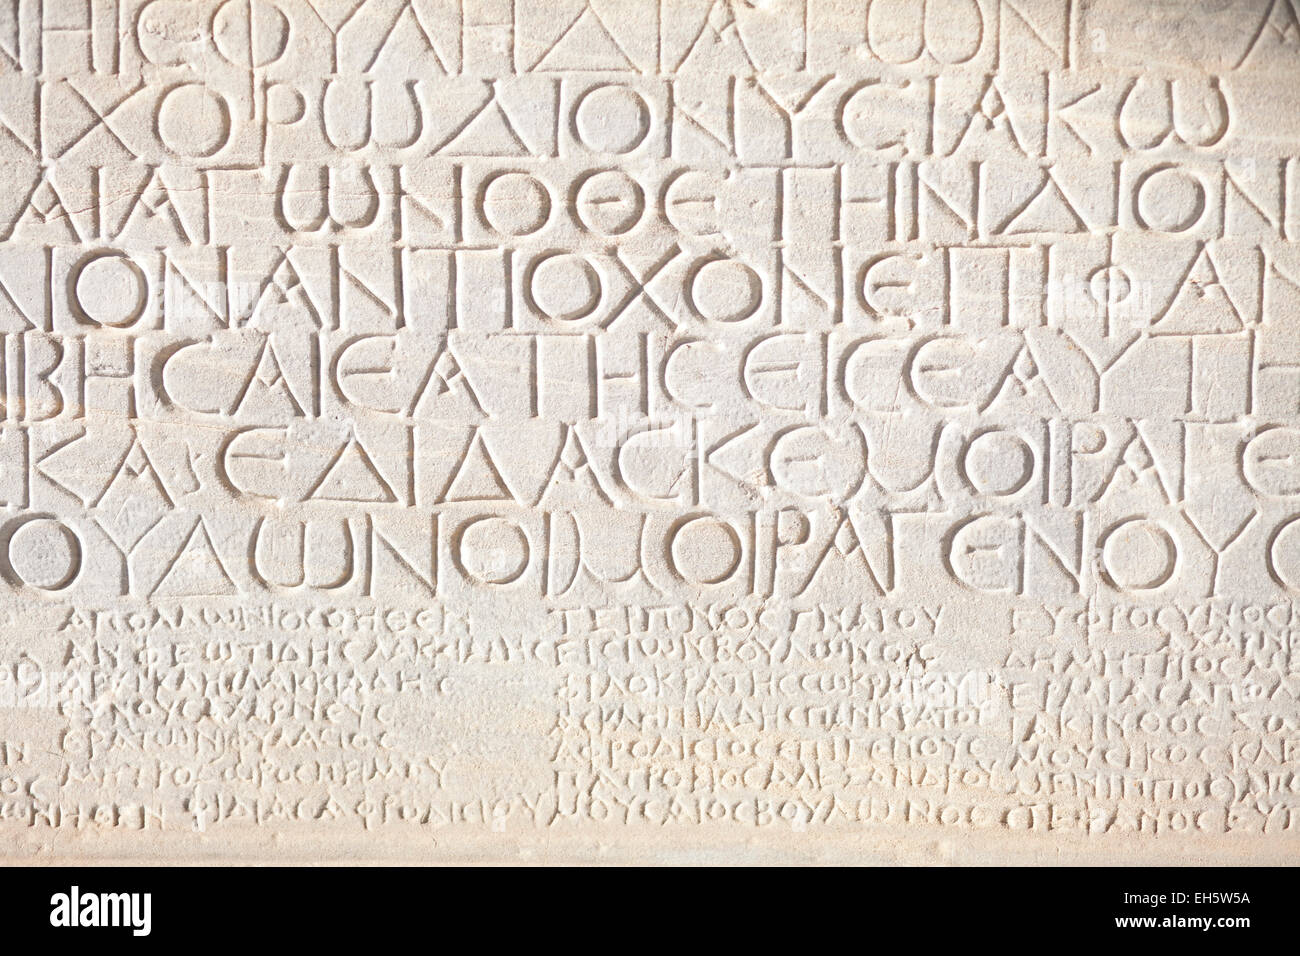 Greek Inscription on Ruins on Acropolis Parthenon - Stock Image